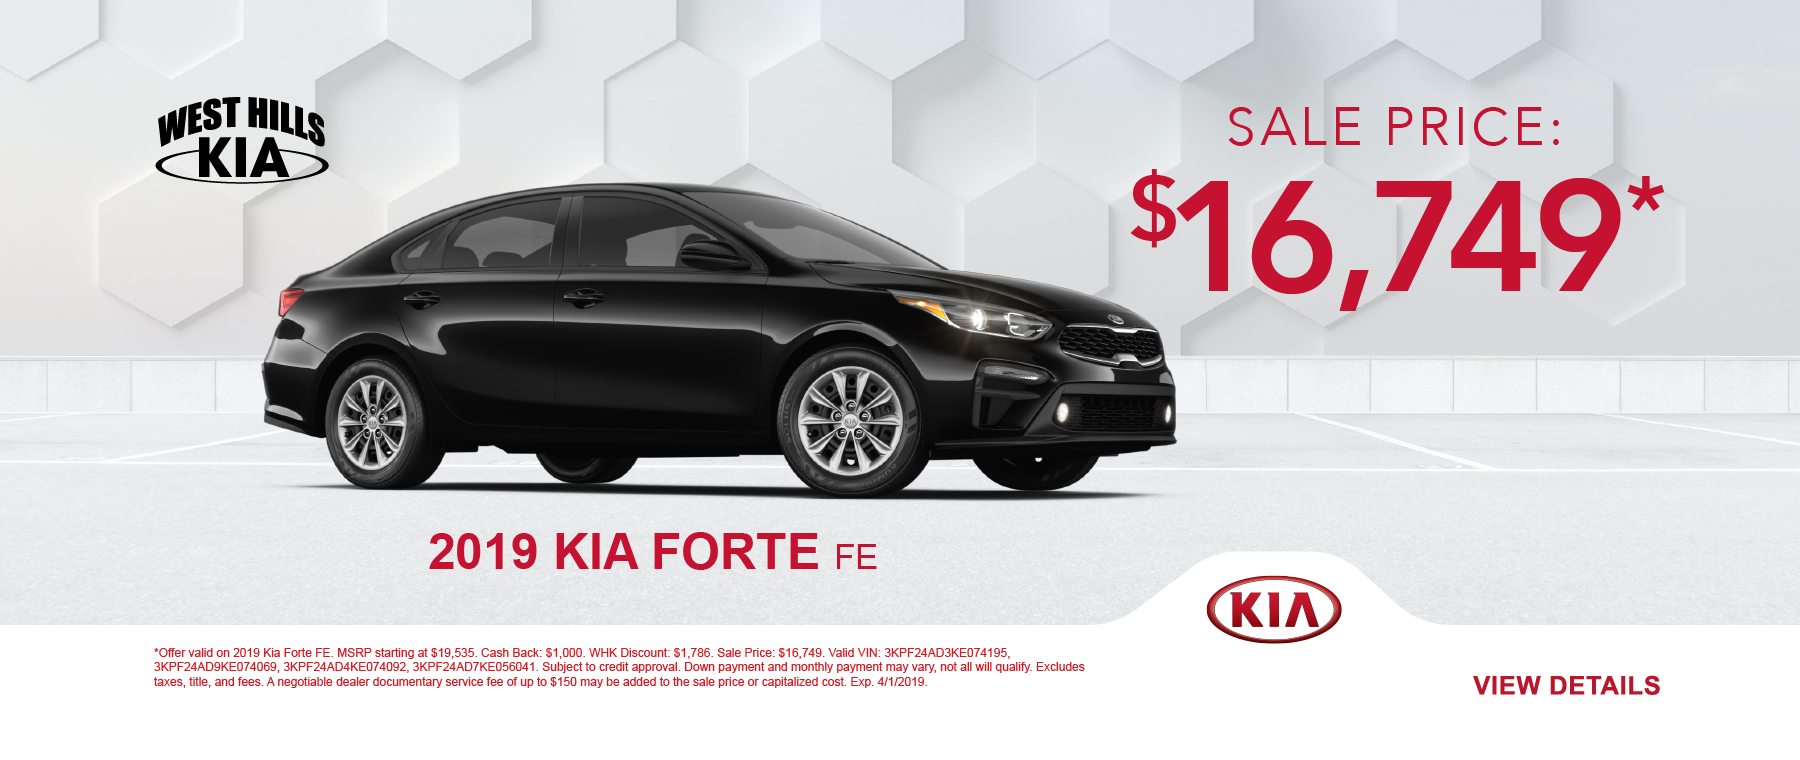 2019 Kia Forte FE MSRP: $19,535 Cash Back: $1,000 WHK Discount: $1,786 Sale Price: $16,749 *   *Offer valid on 2019 Kia Forte FE. MSRP starting at $19,535. Cash Back: $1,000. WHK Discount: $1,786. Sale Price: $16,749. Valid VIN: 3KPF24AD3KE074195, 3KPF24AD9KE074069, 3KPF24AD4KE074092, 3KPF24AD7KE056041. Subject to credit approval. Down payment and monthly payment may vary, not all will qualify. Excludes taxes, title, and fees. A negotiable dealer documentary service fee of up to $150 may be added to the sale price or capitalized cost. Exp. 4/1/2019.